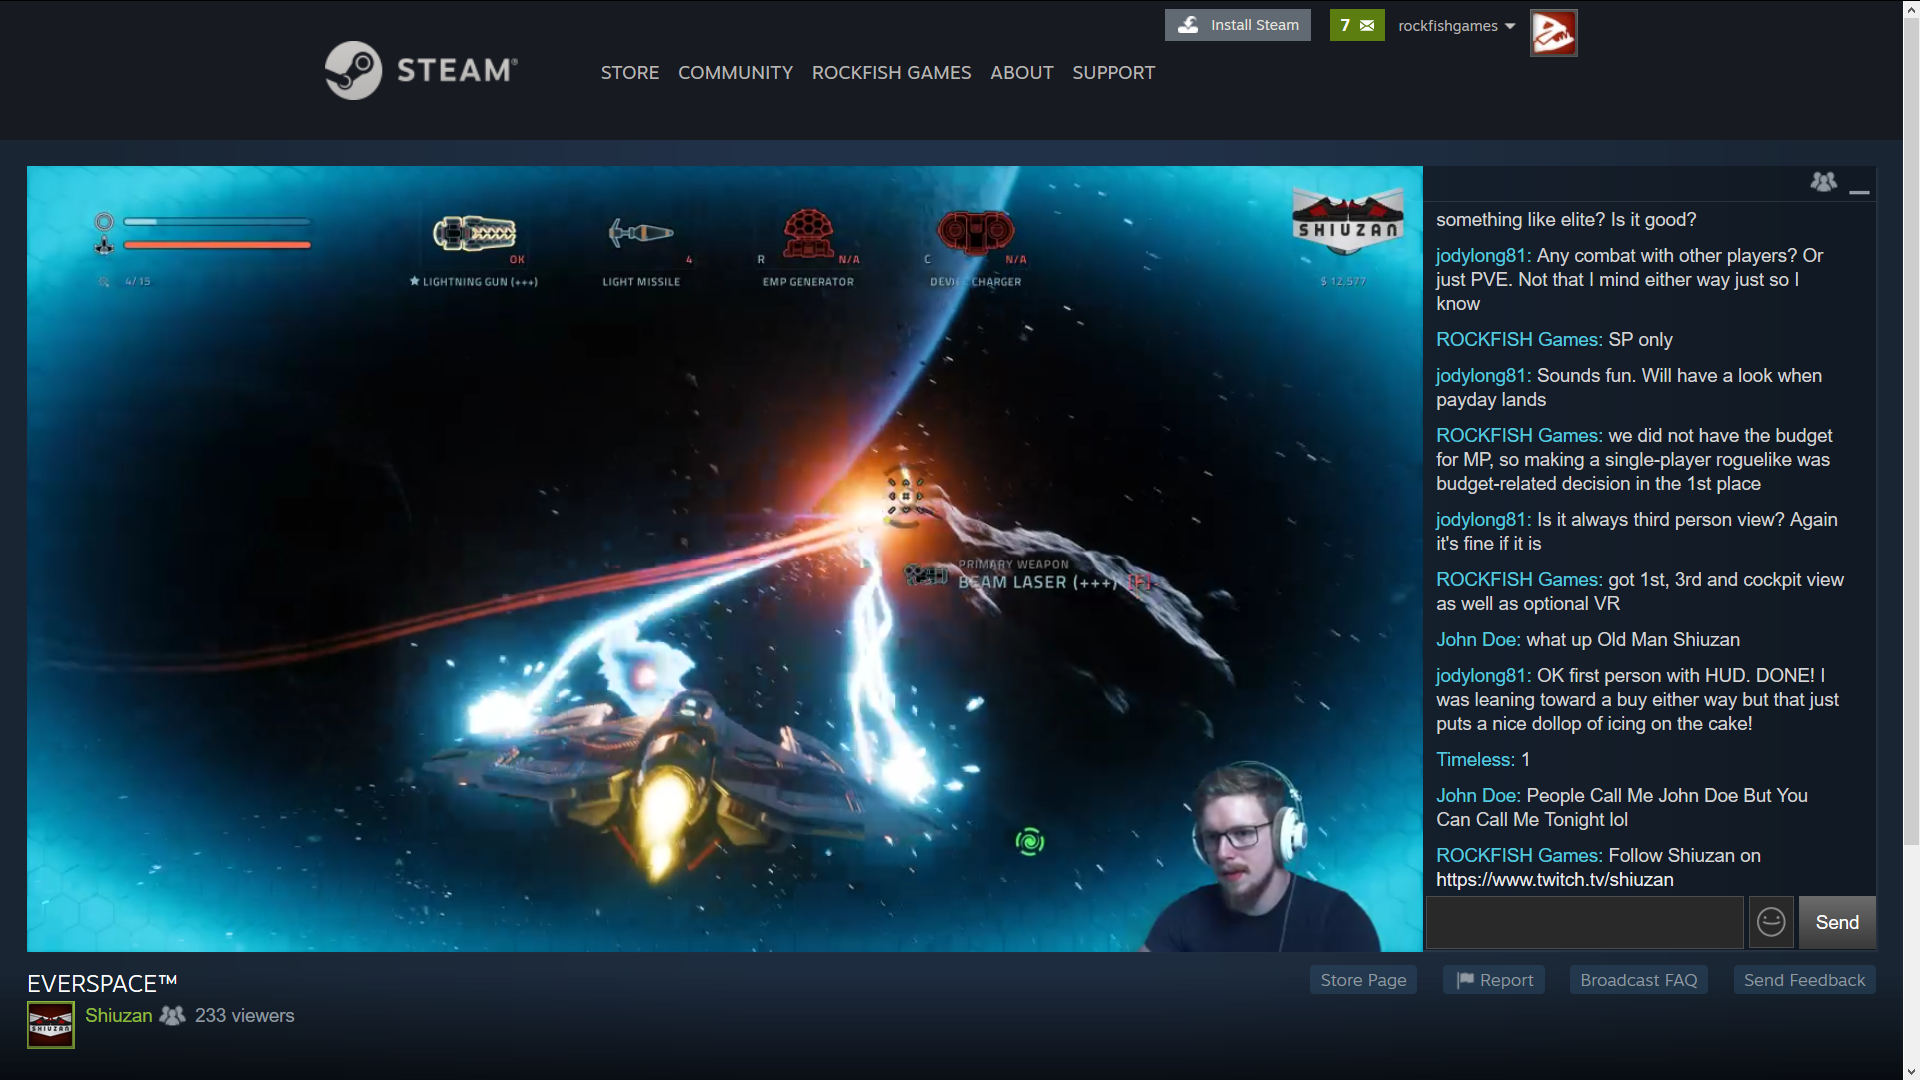 Steam live chat